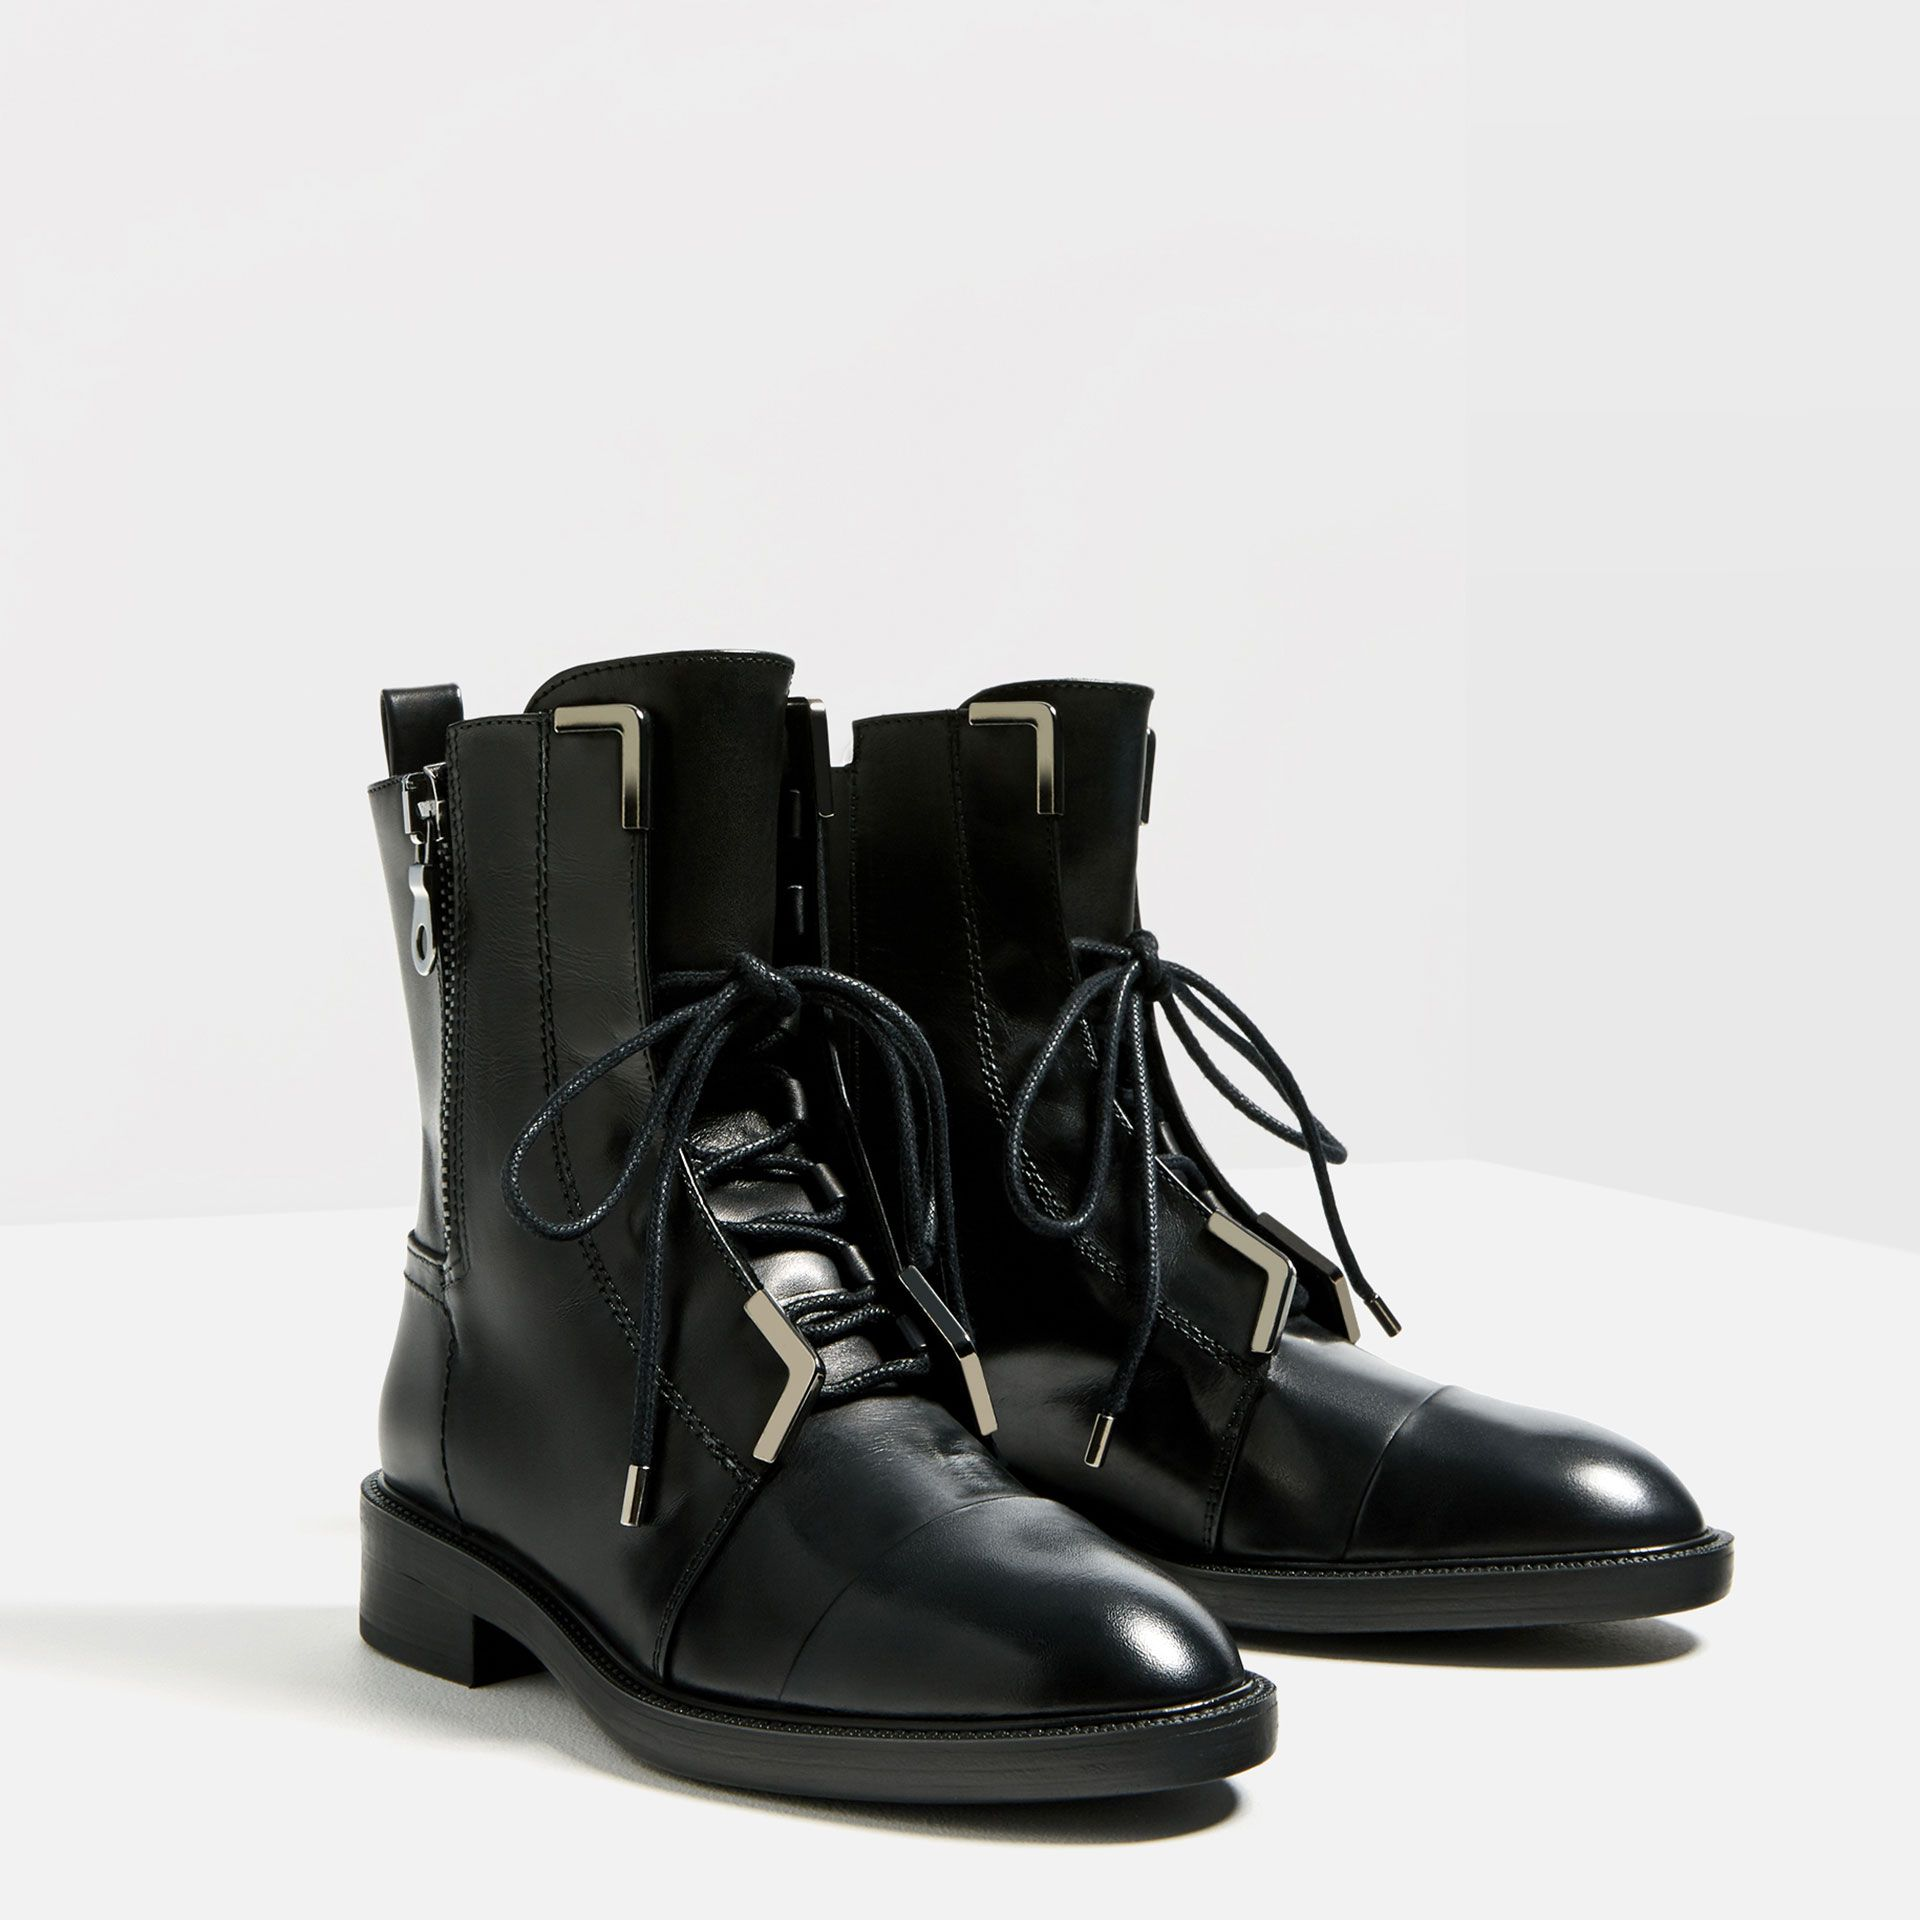 LADIES NIGHT OUT COMFY LACE UP DR DOC BLOCK HEEL ANKLE COMBAT BOOTS WOMENS SHOES